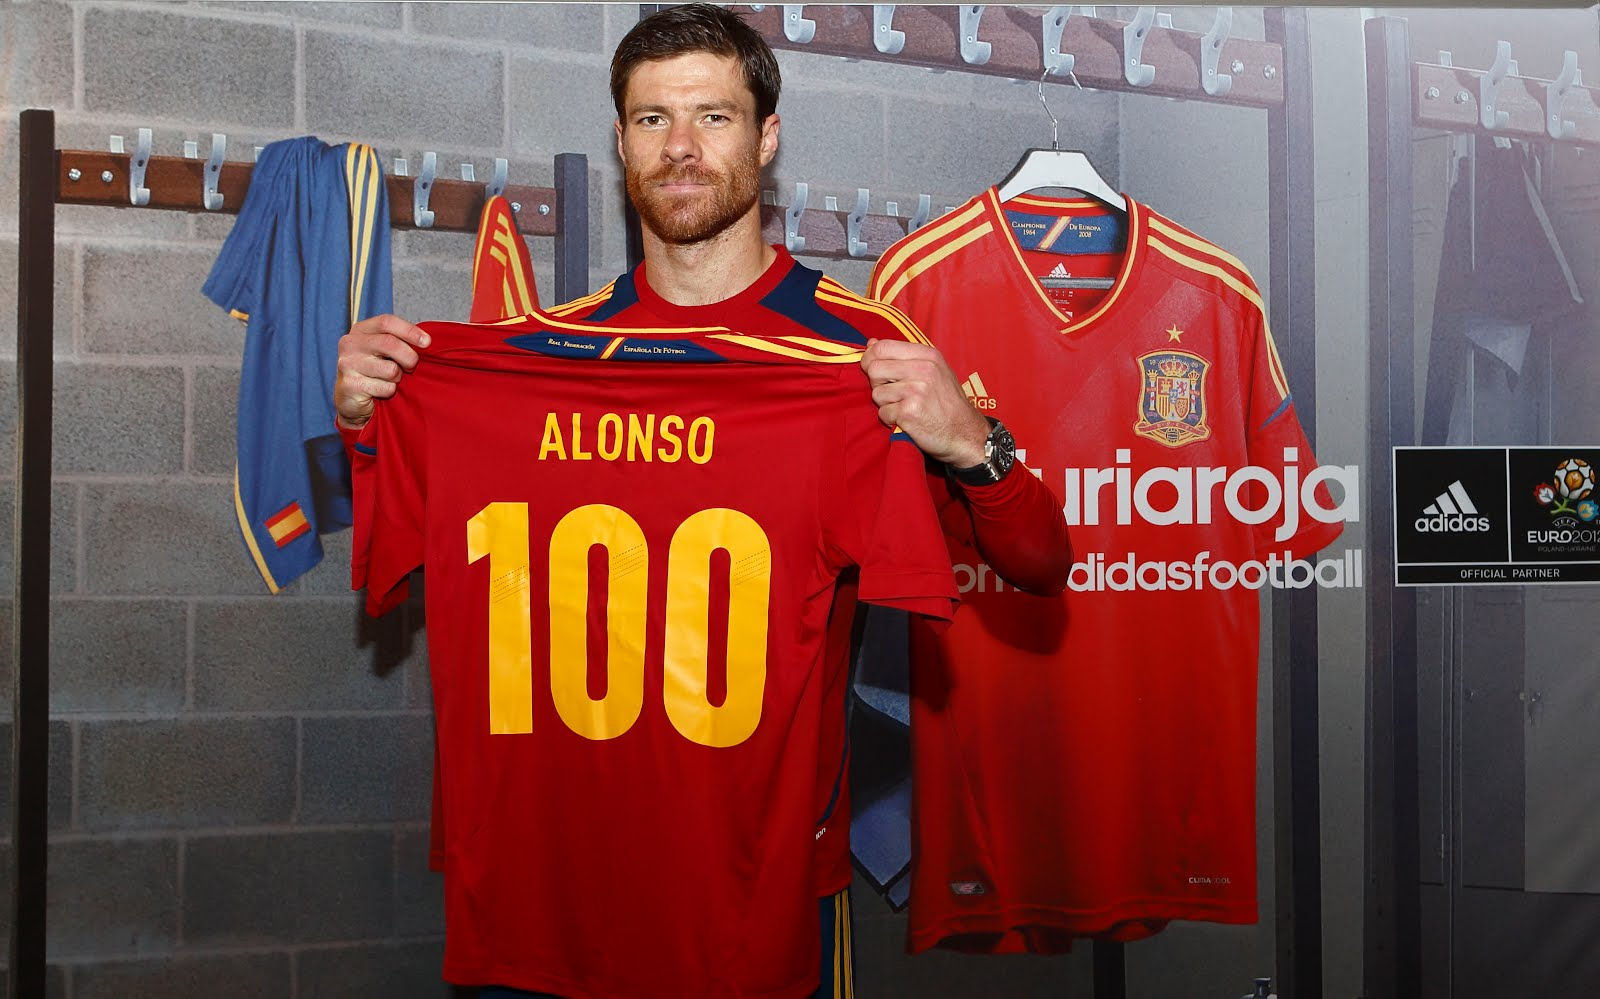 Xabi Alonso photo #401872